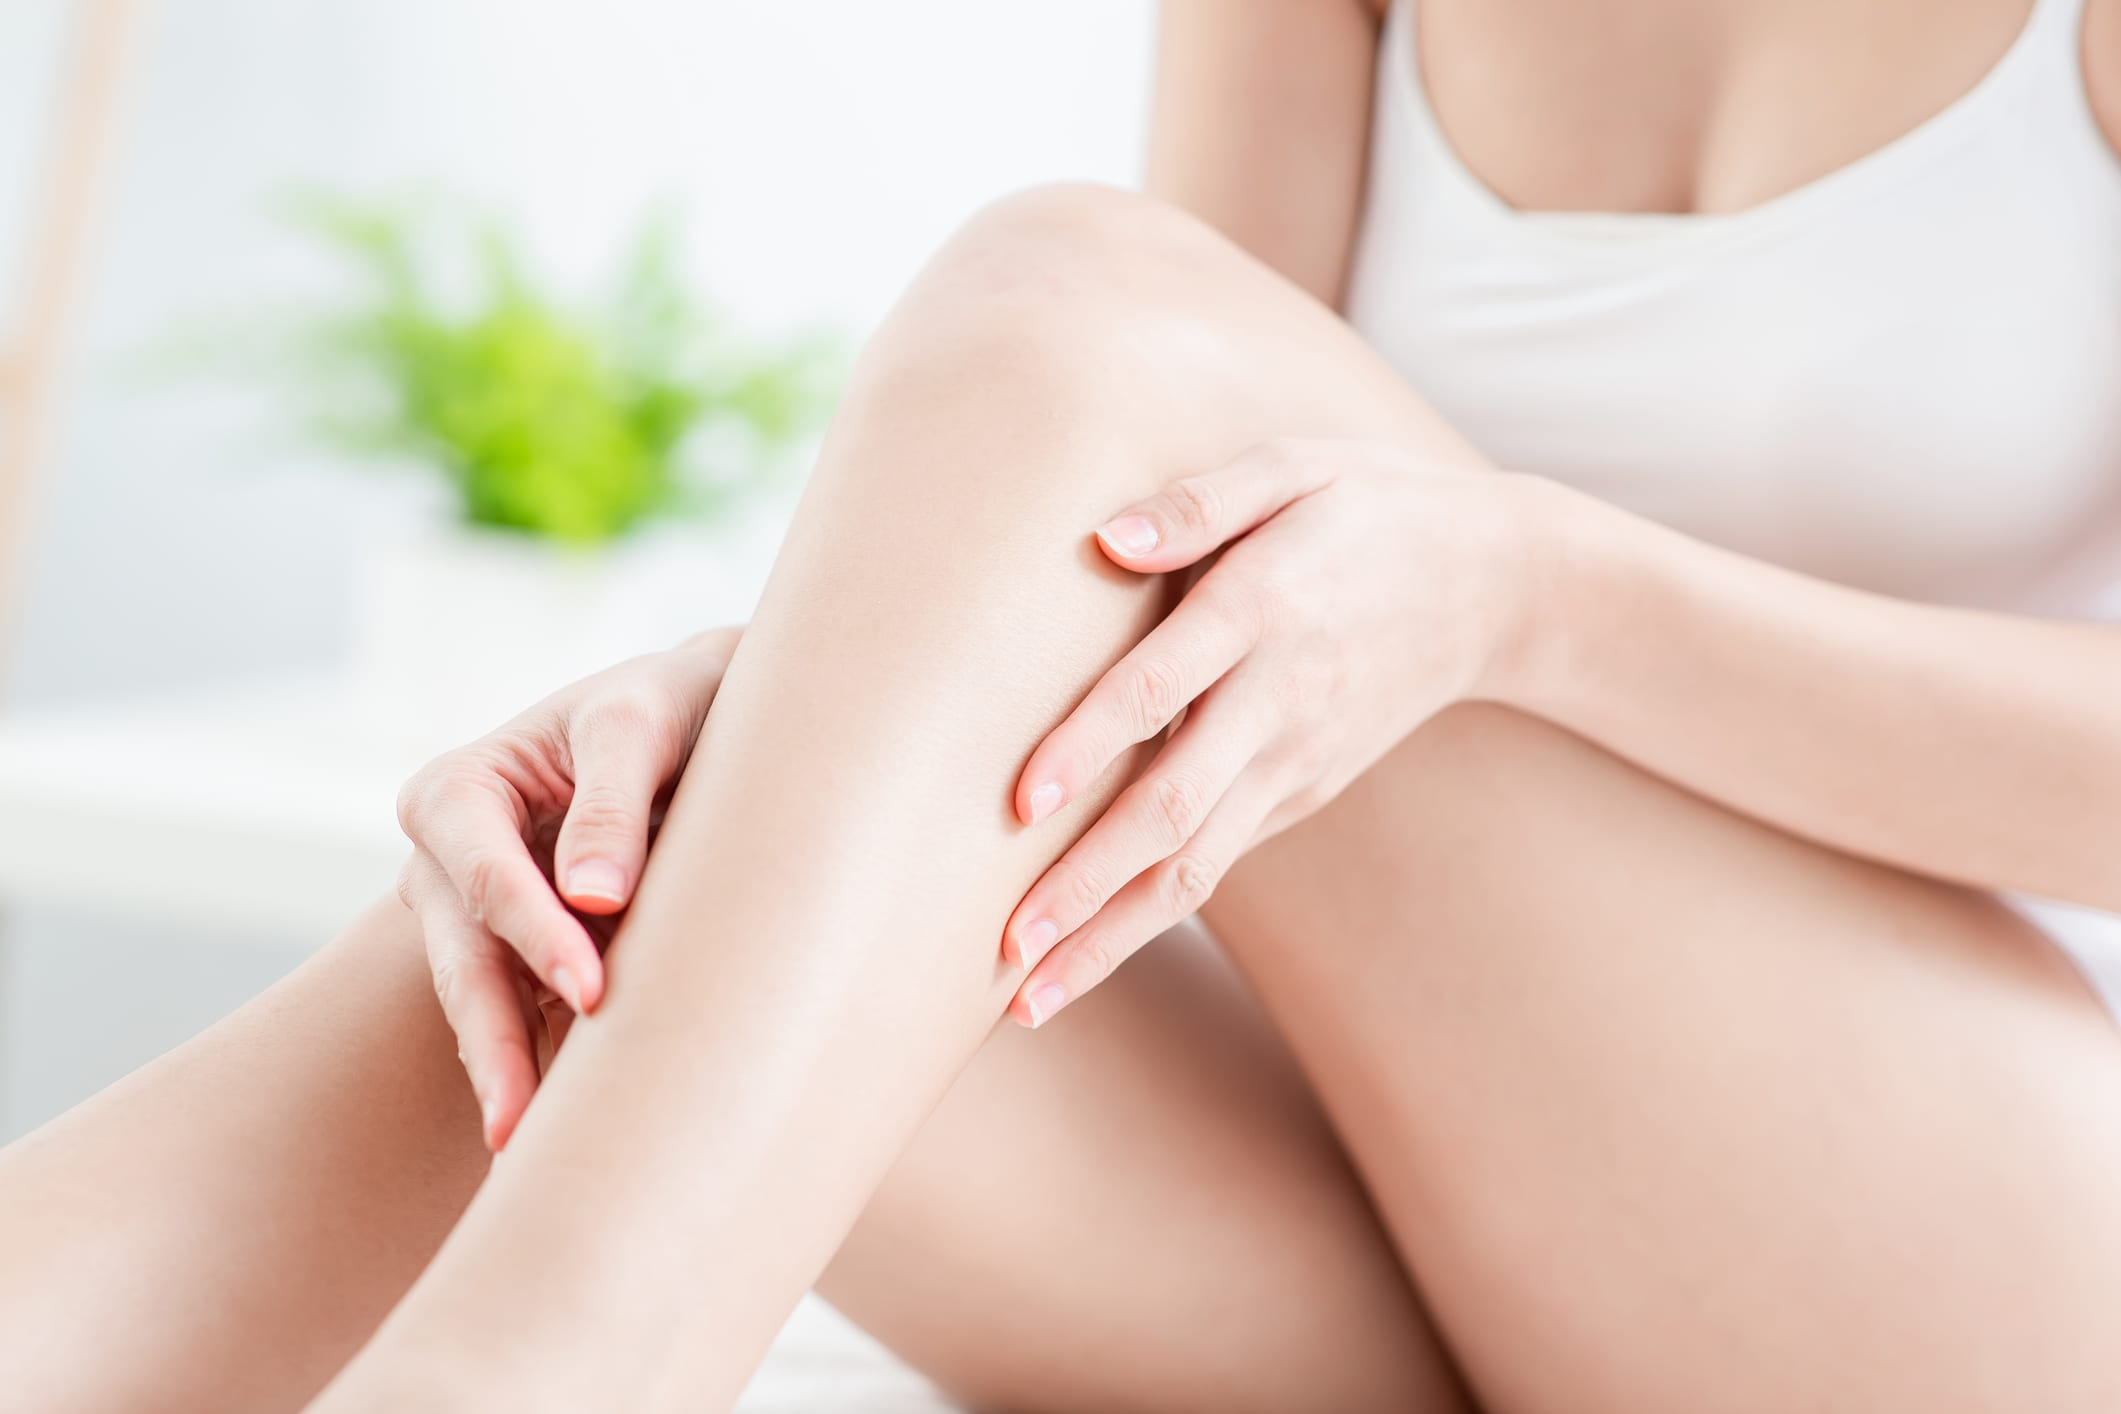 Woman touching her perfect smooth legs